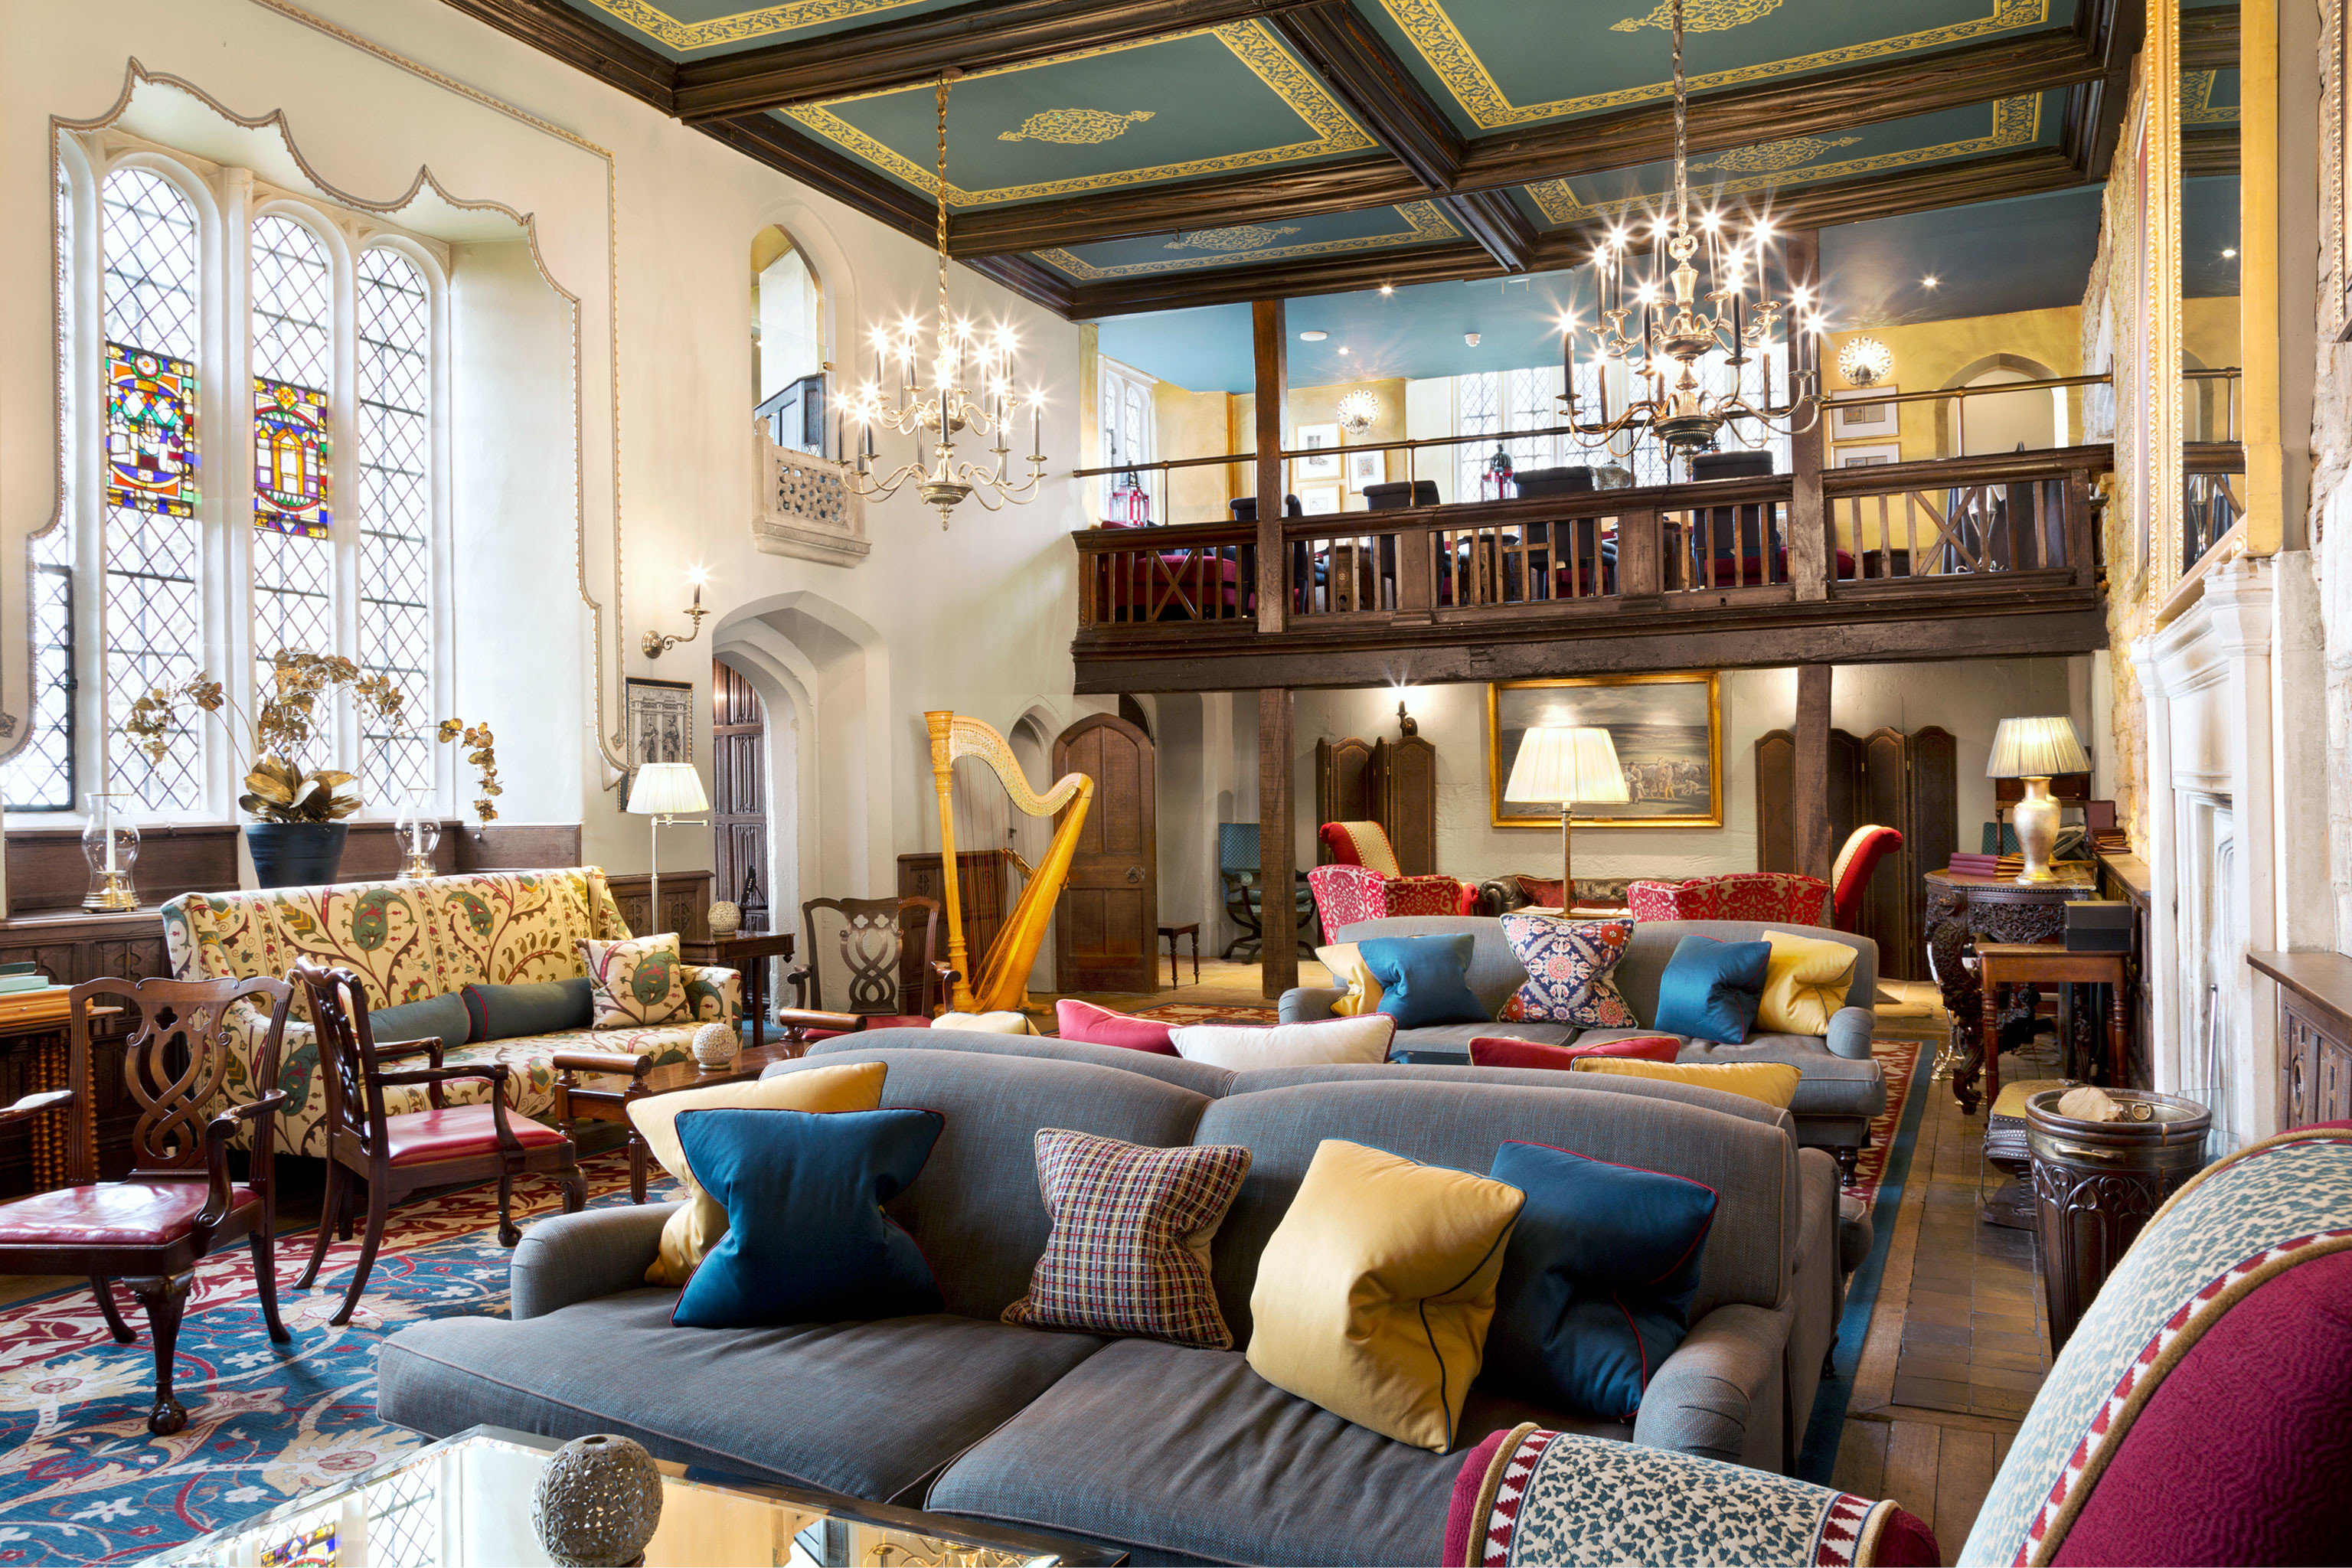 Country Hotels Lounge Luxury Resort living room property home cluttered